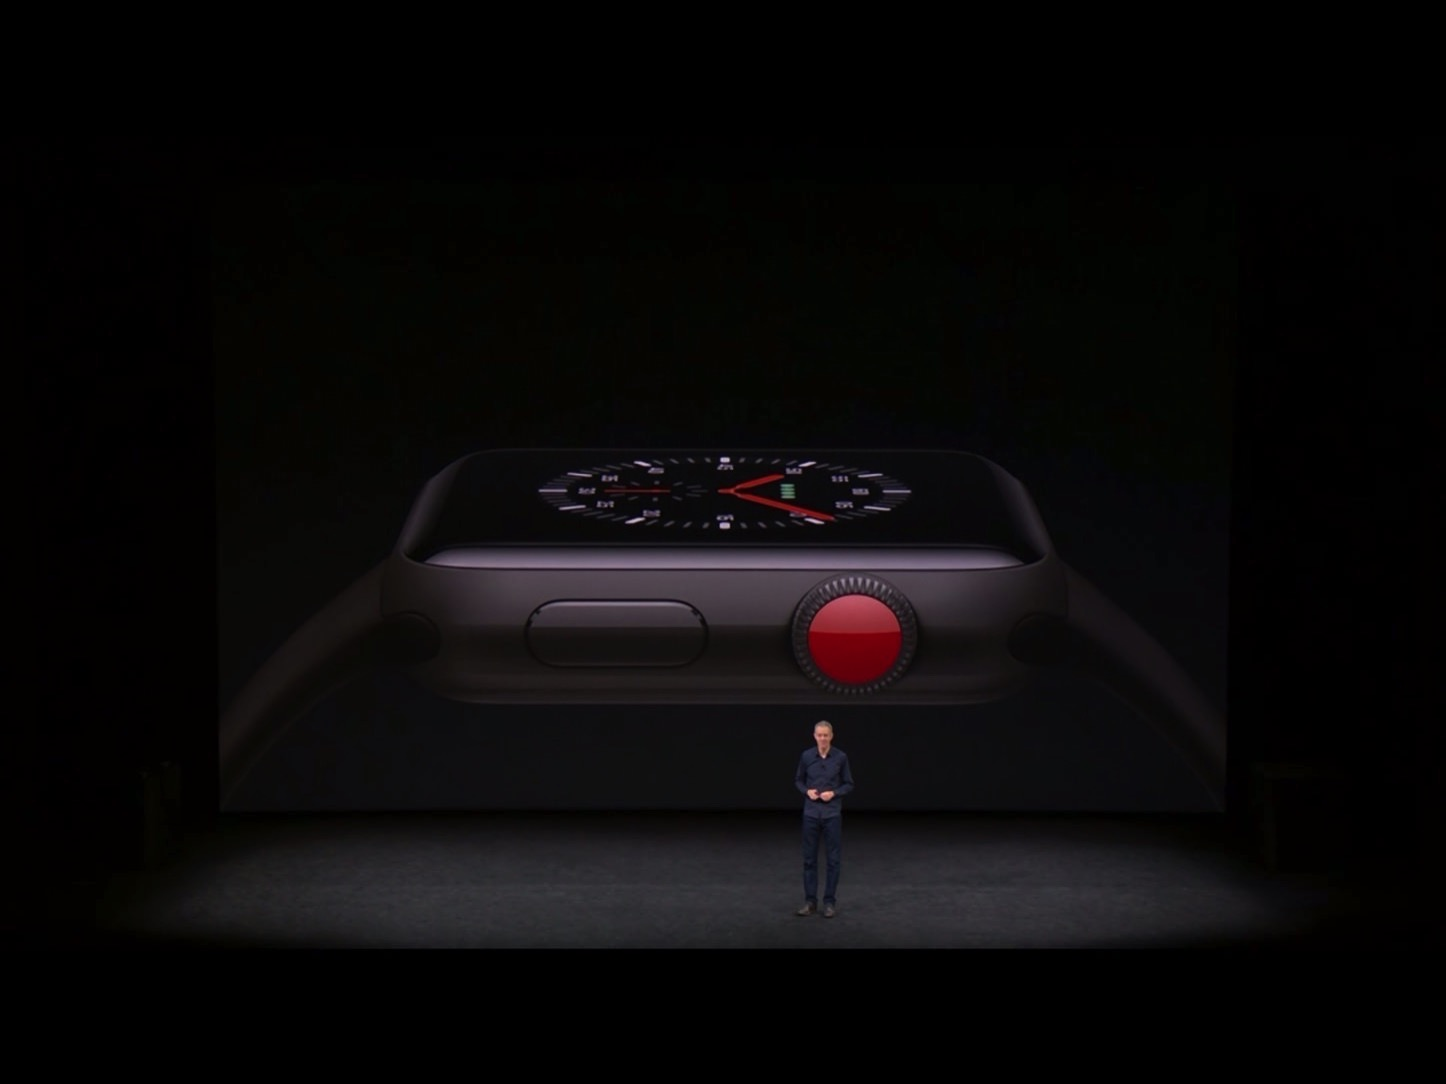 Apple Watch Series 3 24